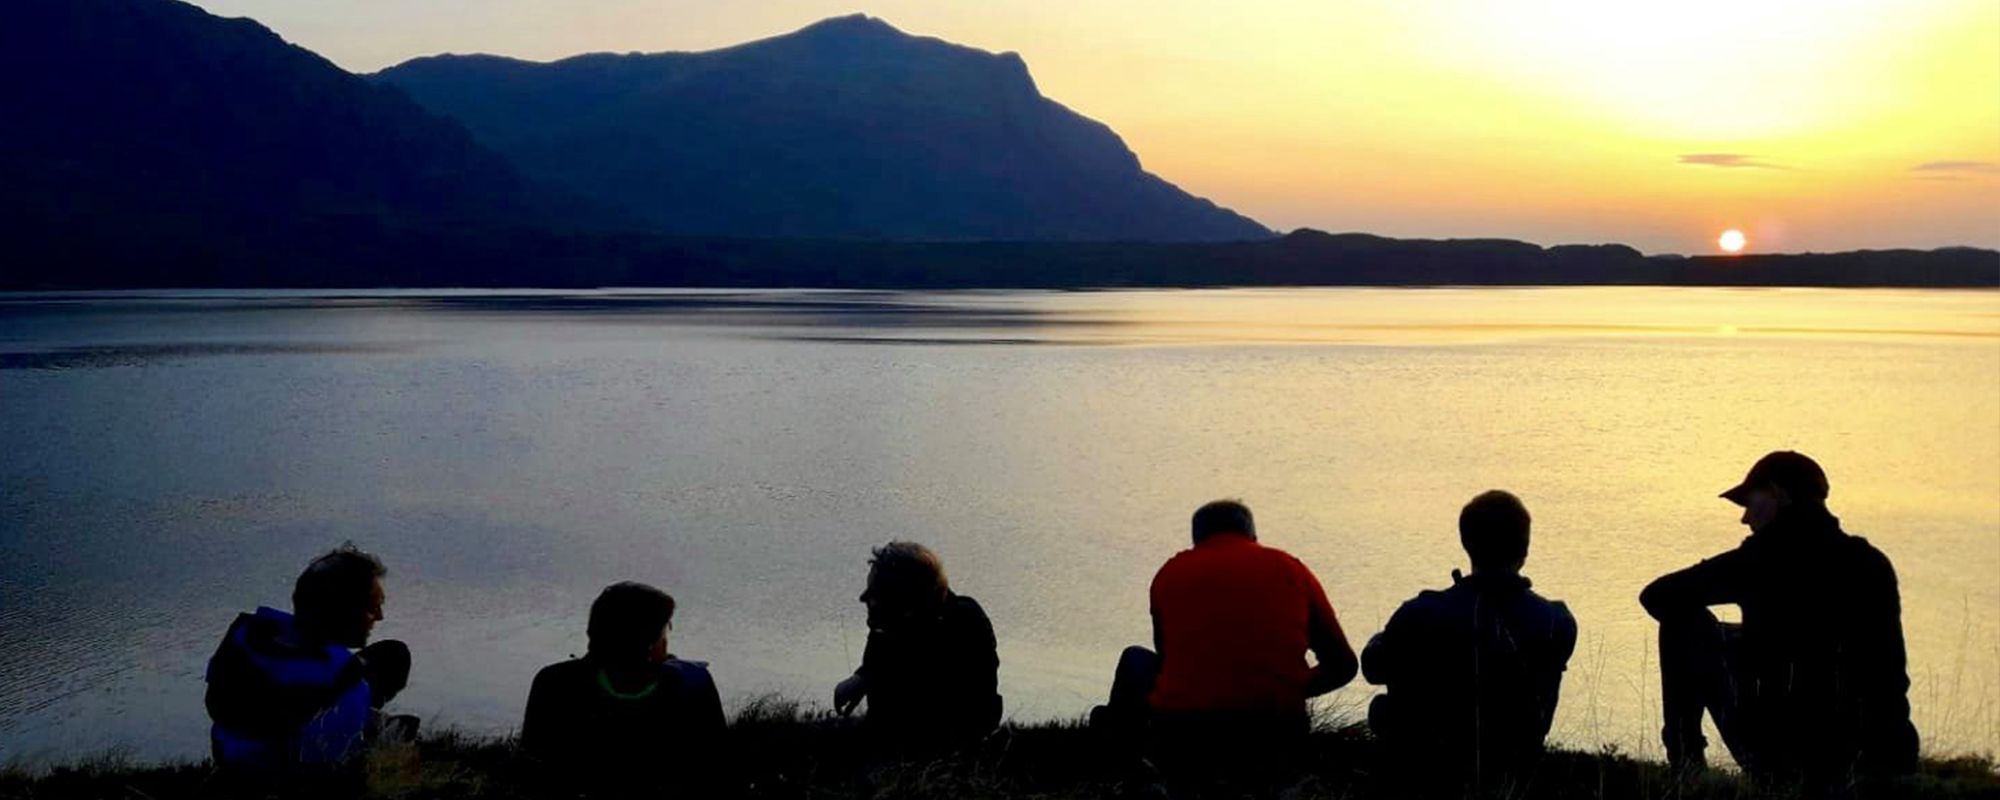 A group of men watch the sunset over a loch in Scotland